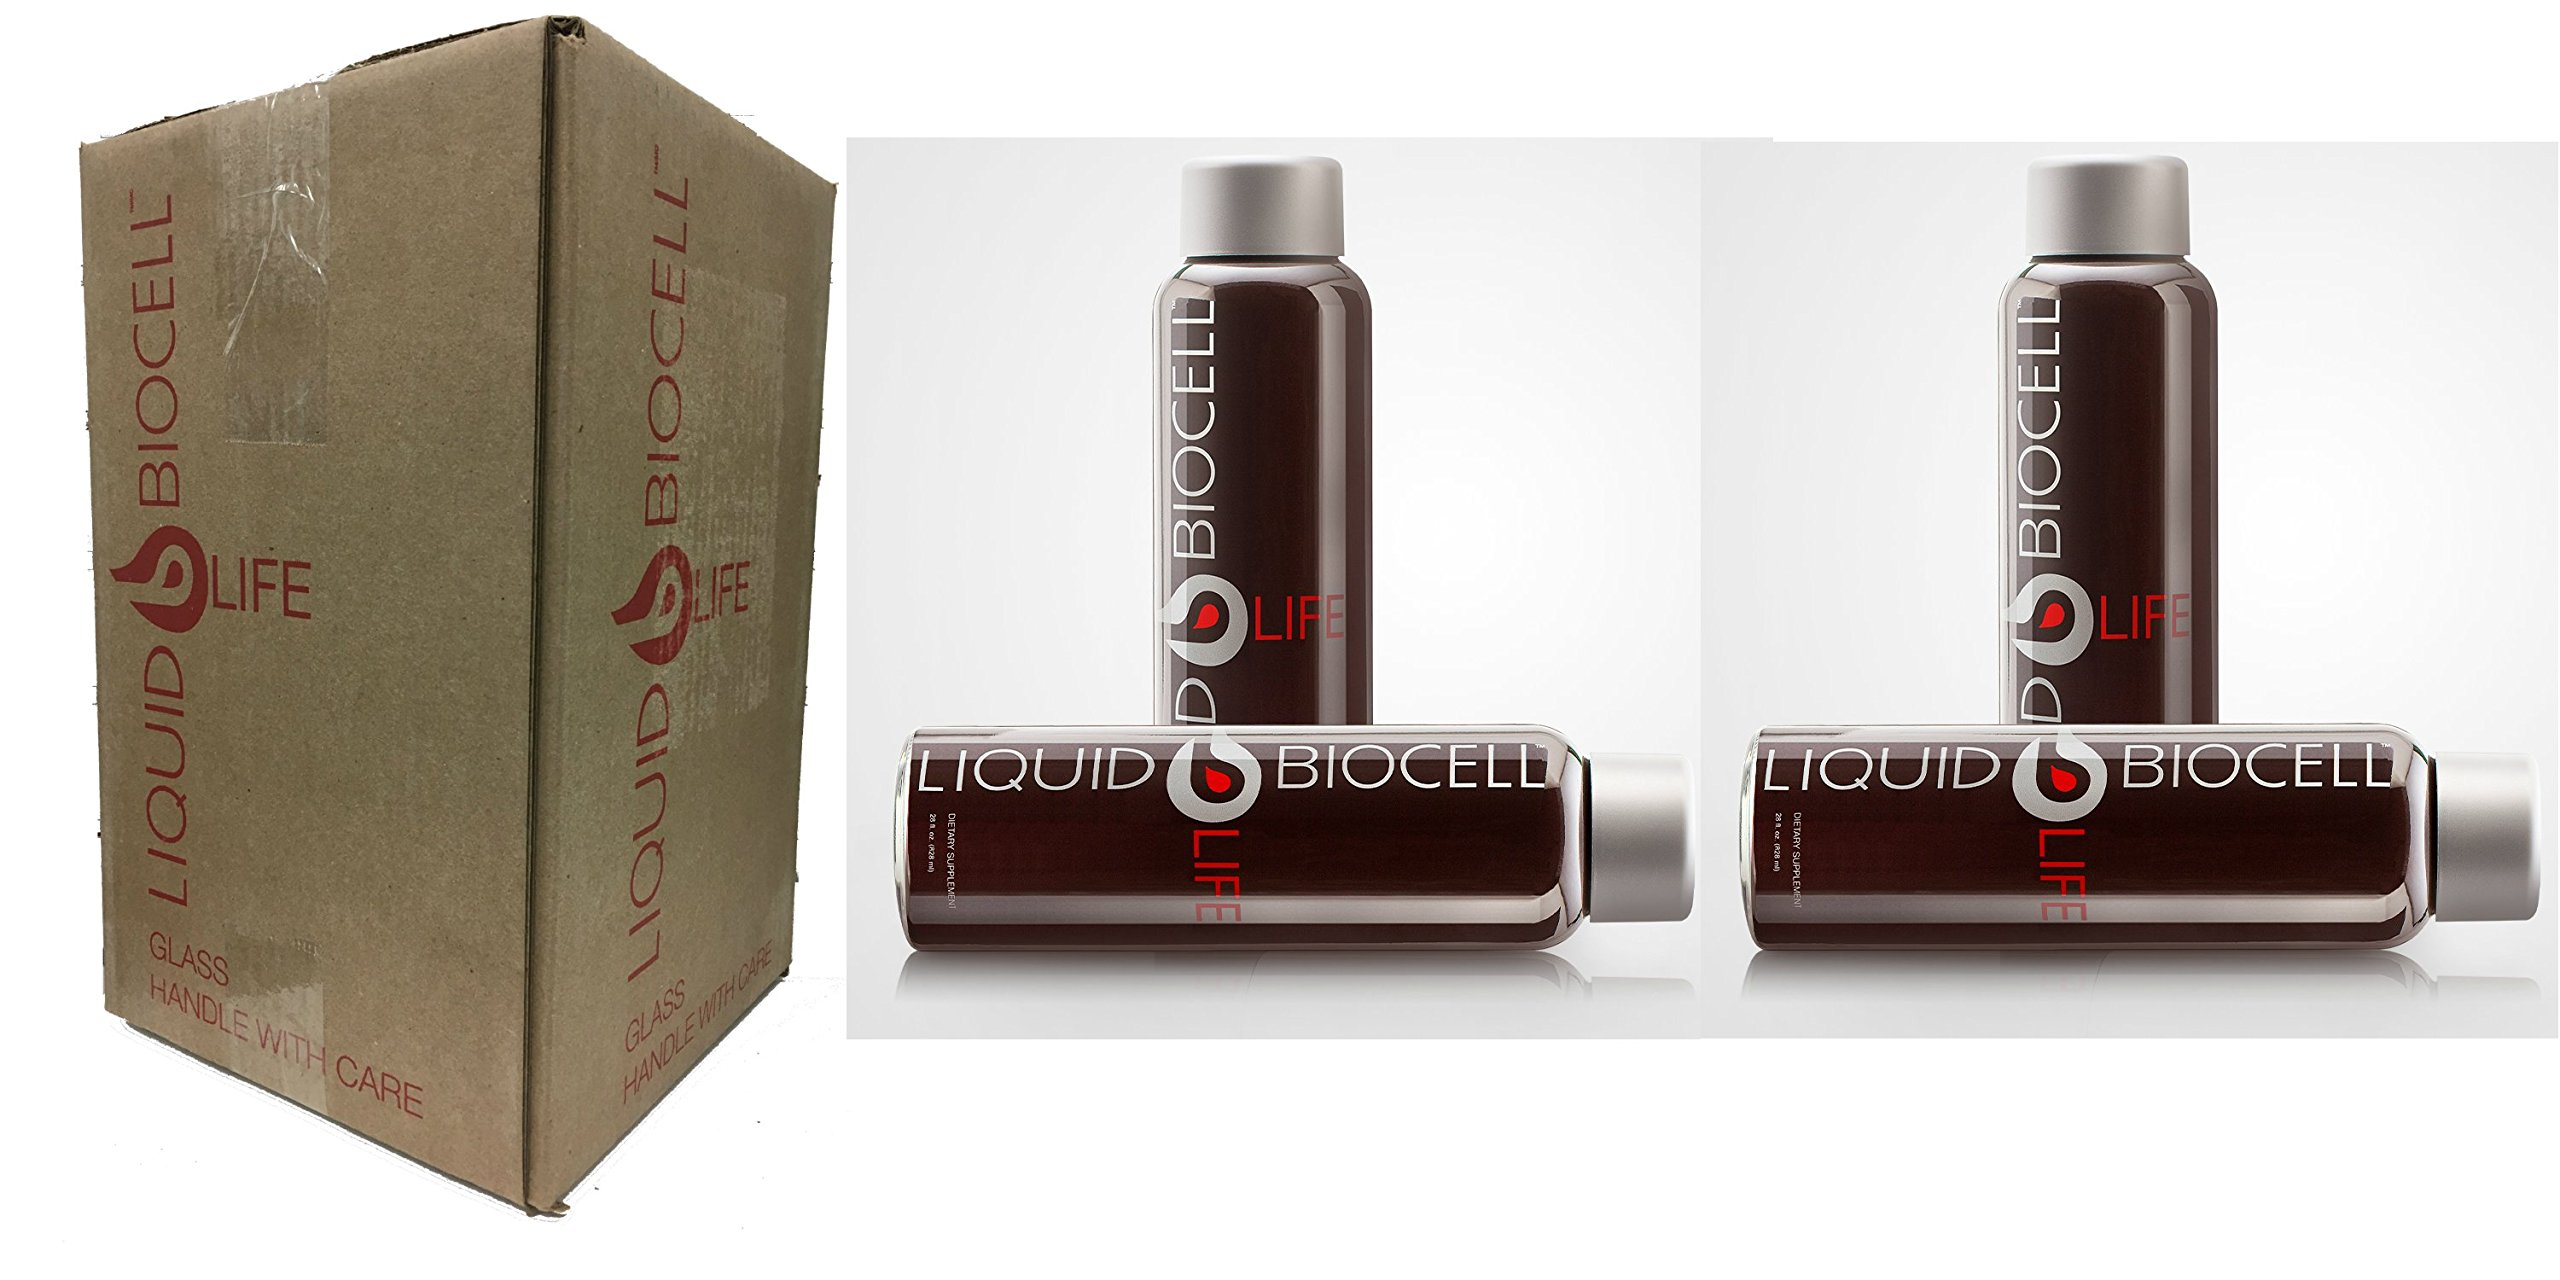 Liquid Biocell Life with Collagen and Resveratrol - Quad Pack (4 Bottles - 28 fl.oz. each) with Enhanced Packing in Original Case - FINAL SALE